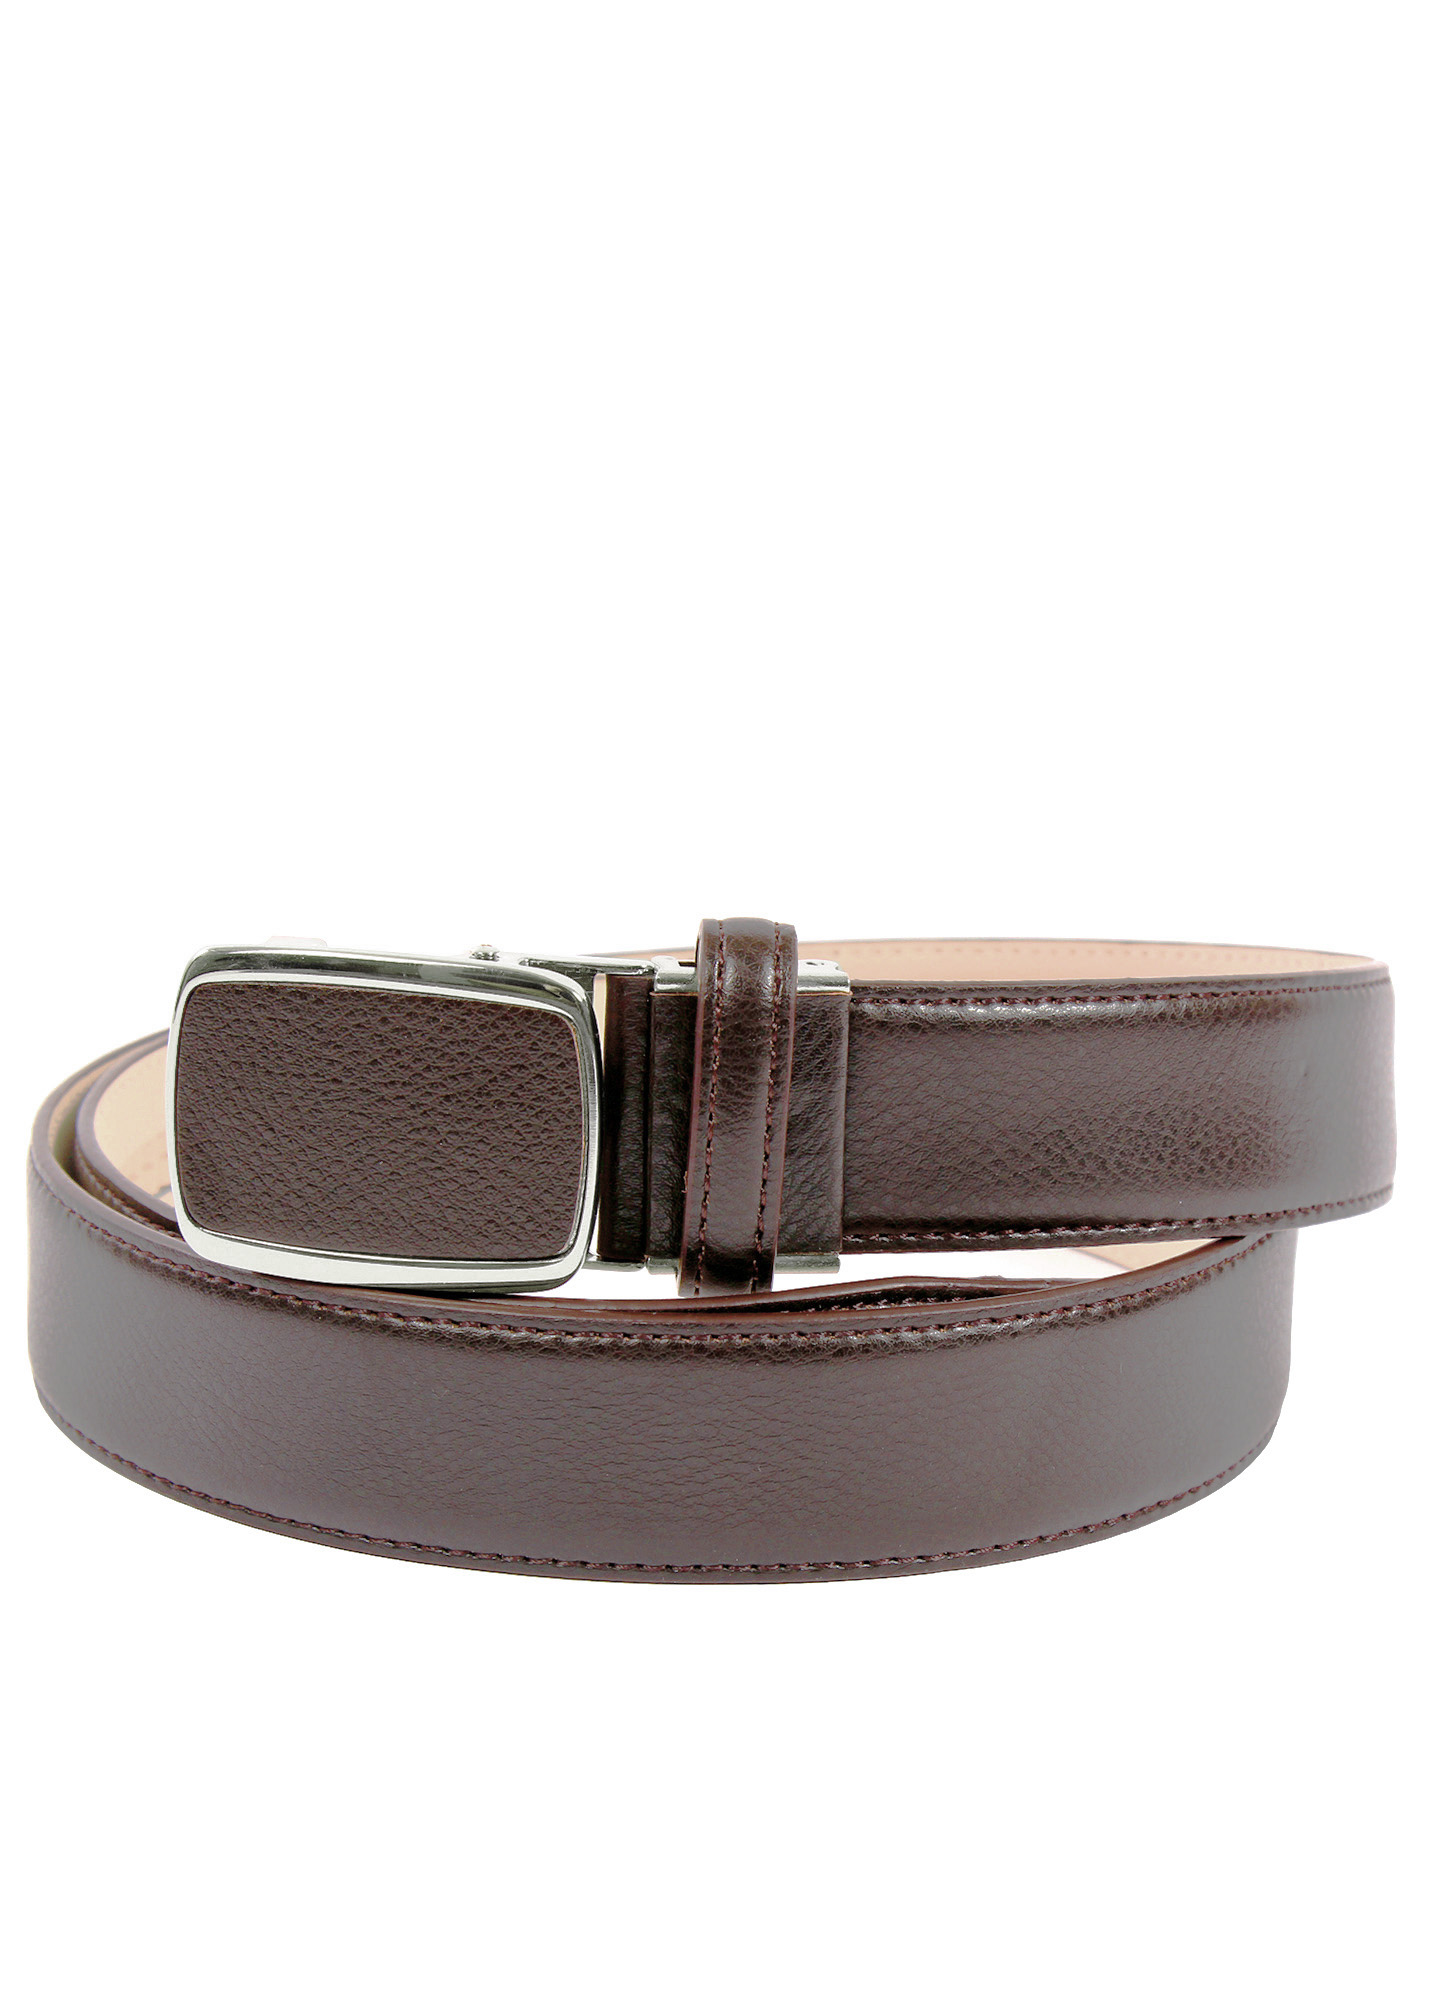 Leather Belts and Straps | Tandy LeatherNew Product Information· Free Buyer's Guide· Wholesale Club· U.S. military discounts.